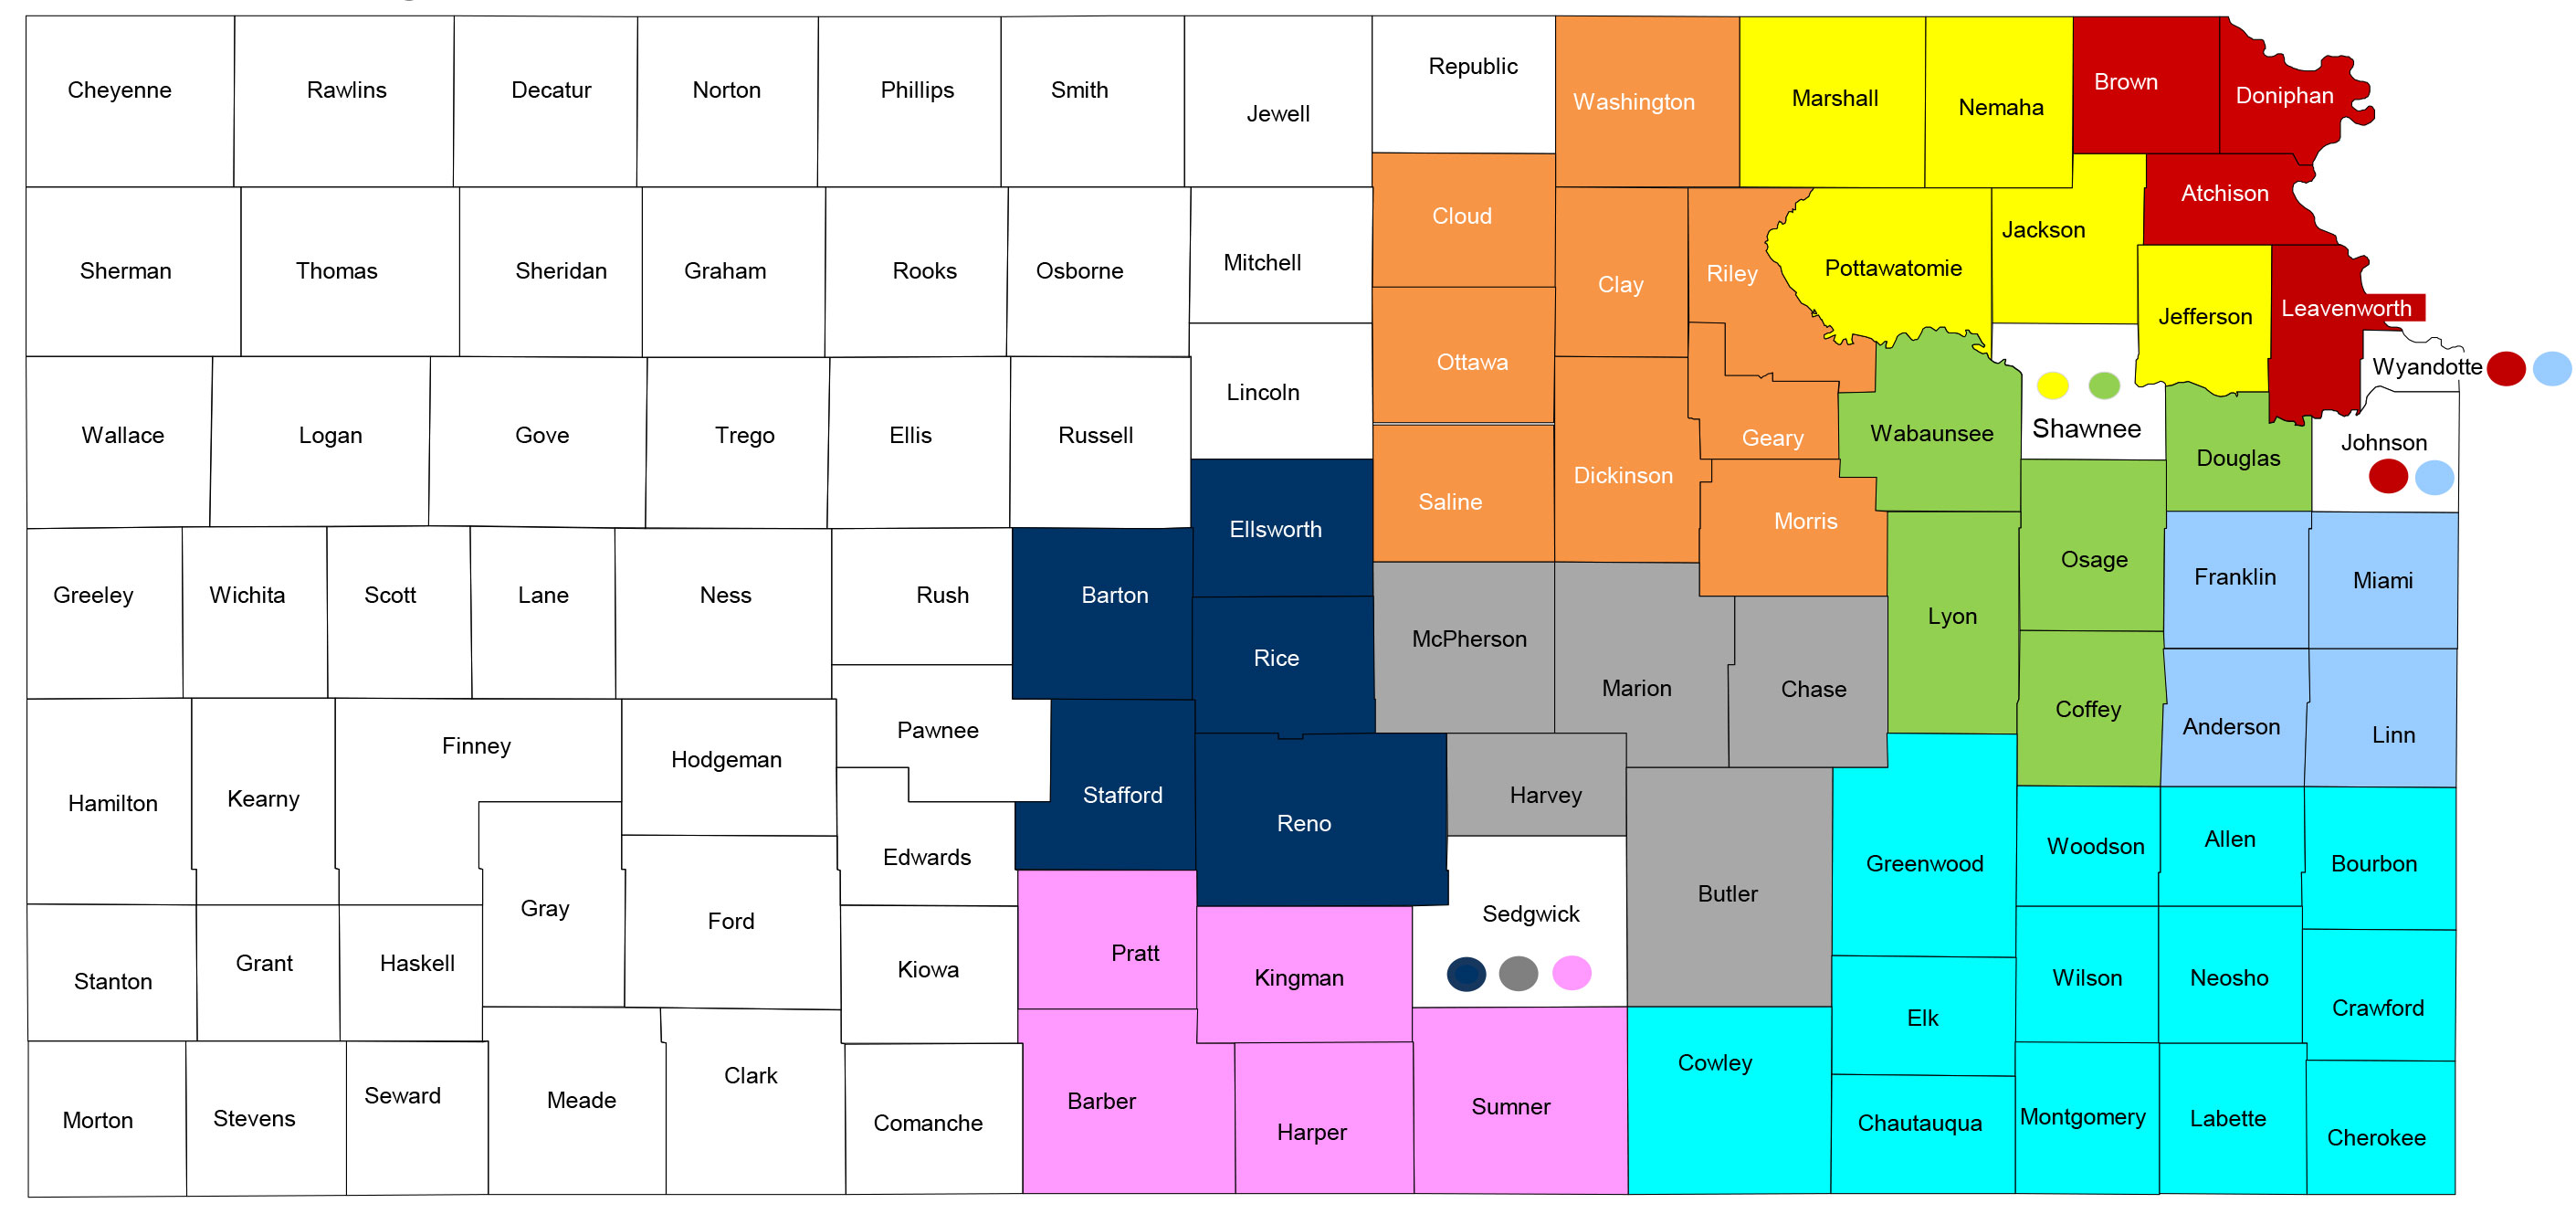 Sunflower Community Representative Map. For complete description, see listings below.